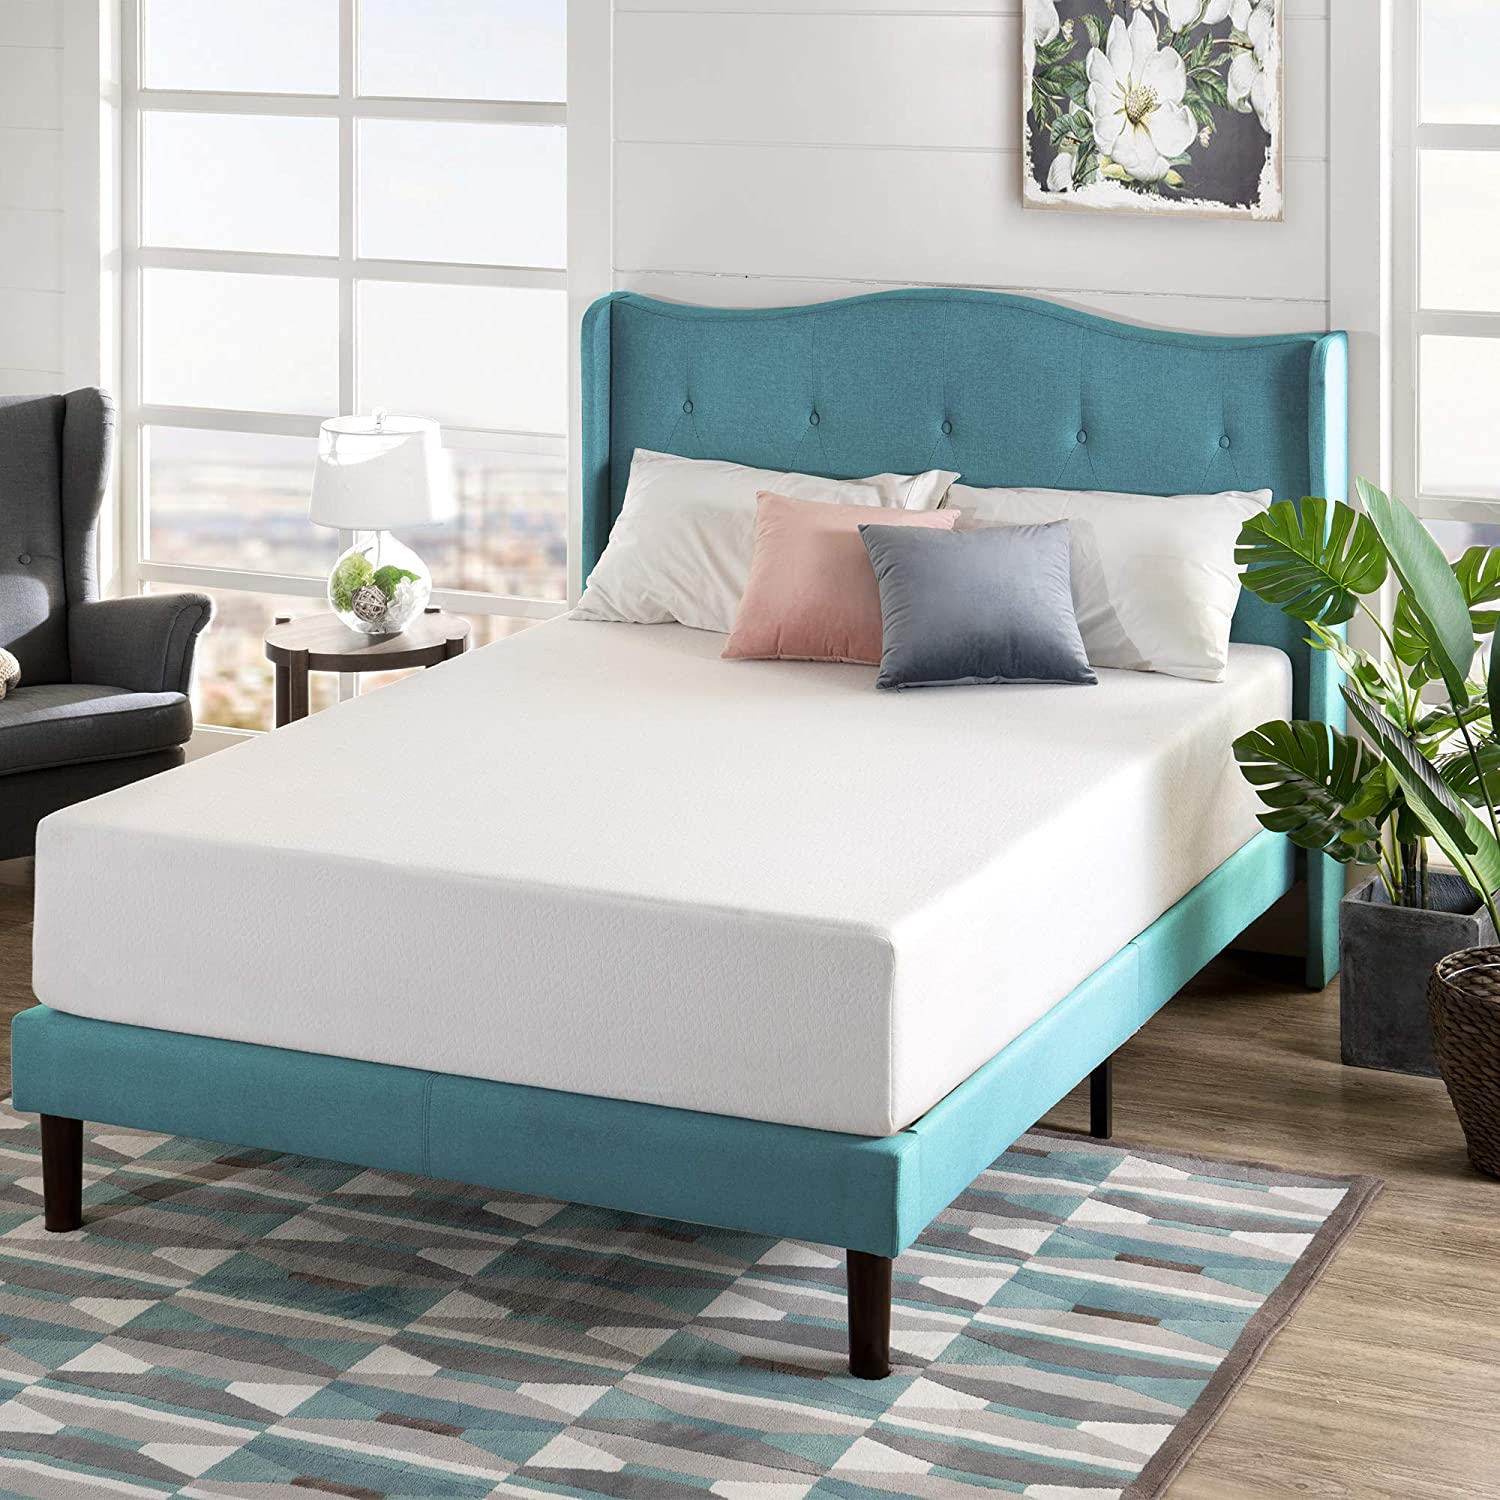 Best Mattress For Heavy People 2020 - Buyer's Guide 5